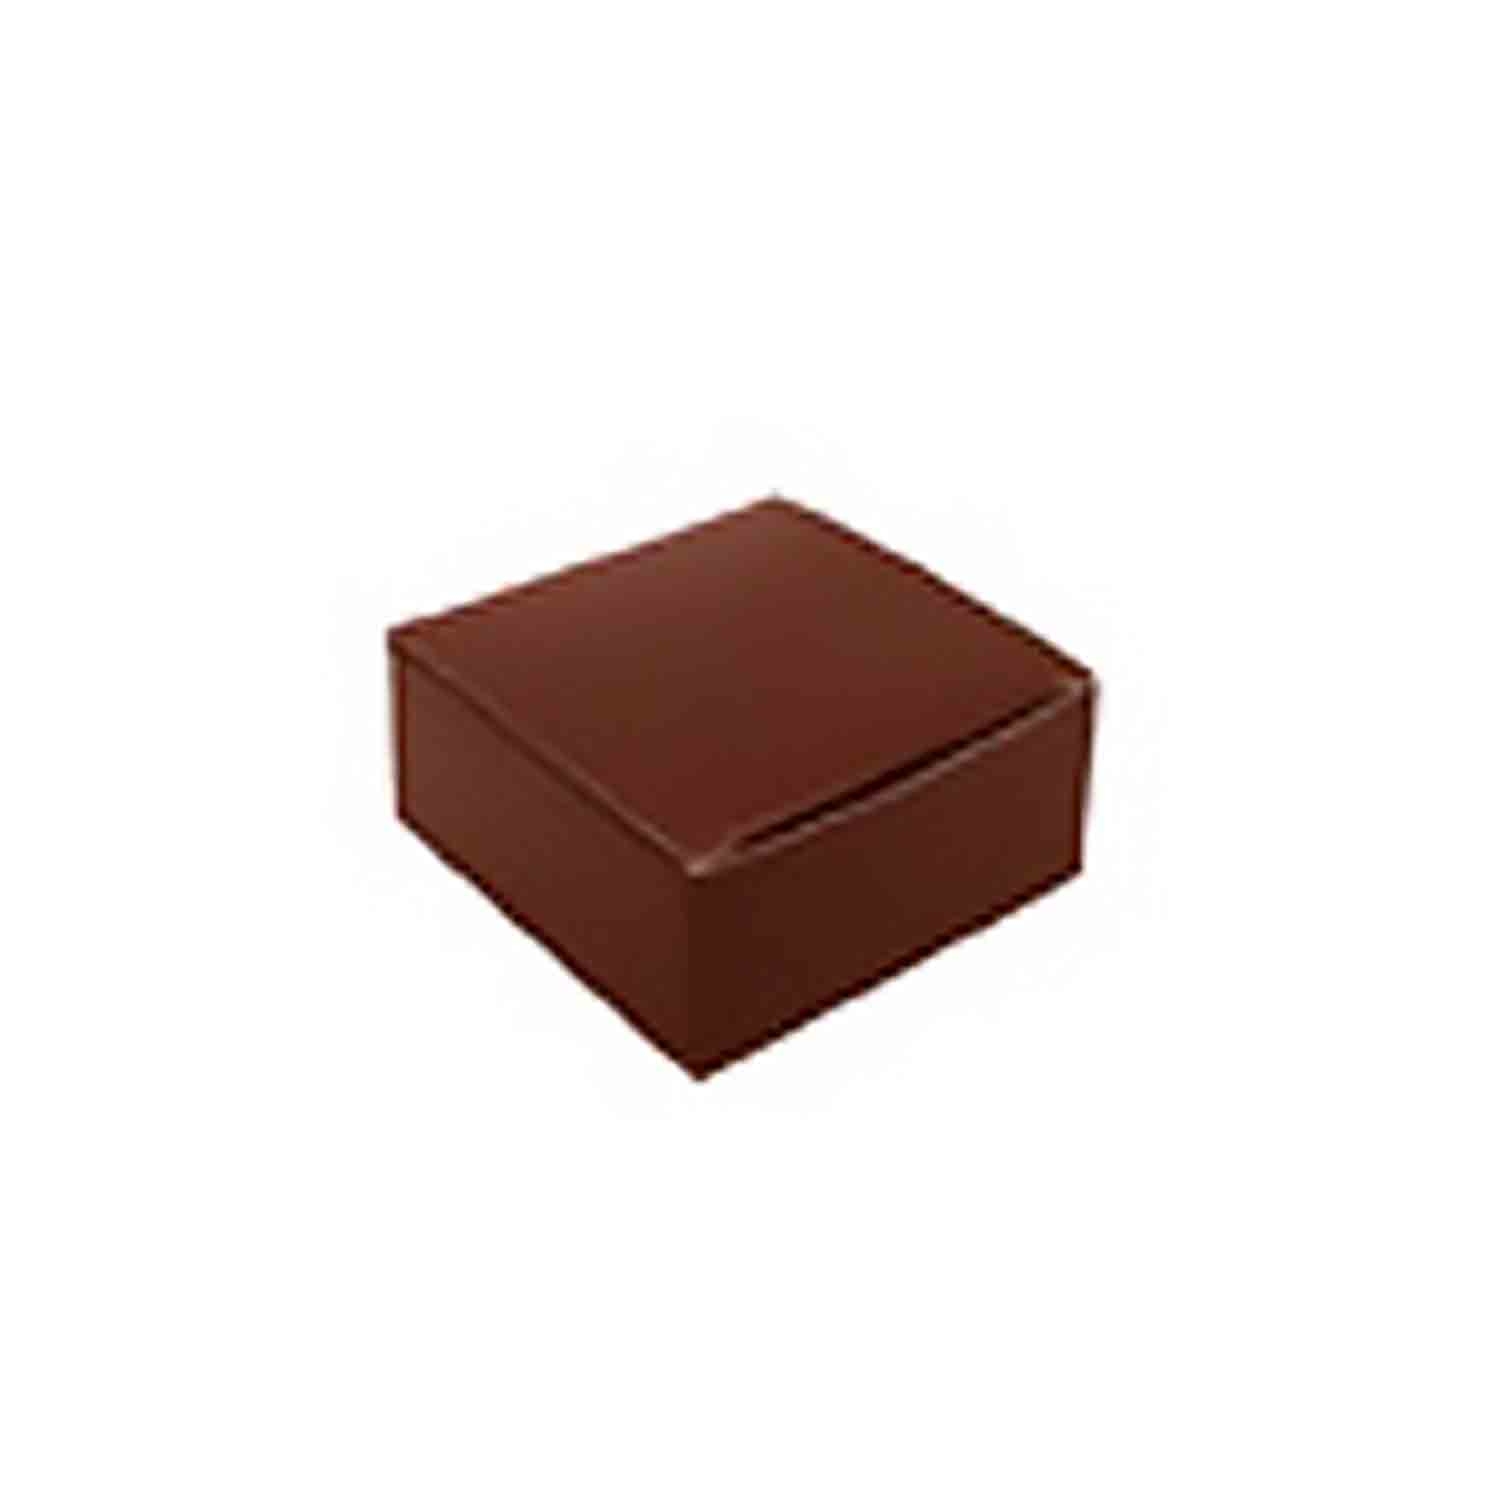 4 Pc. Brown Candy Box